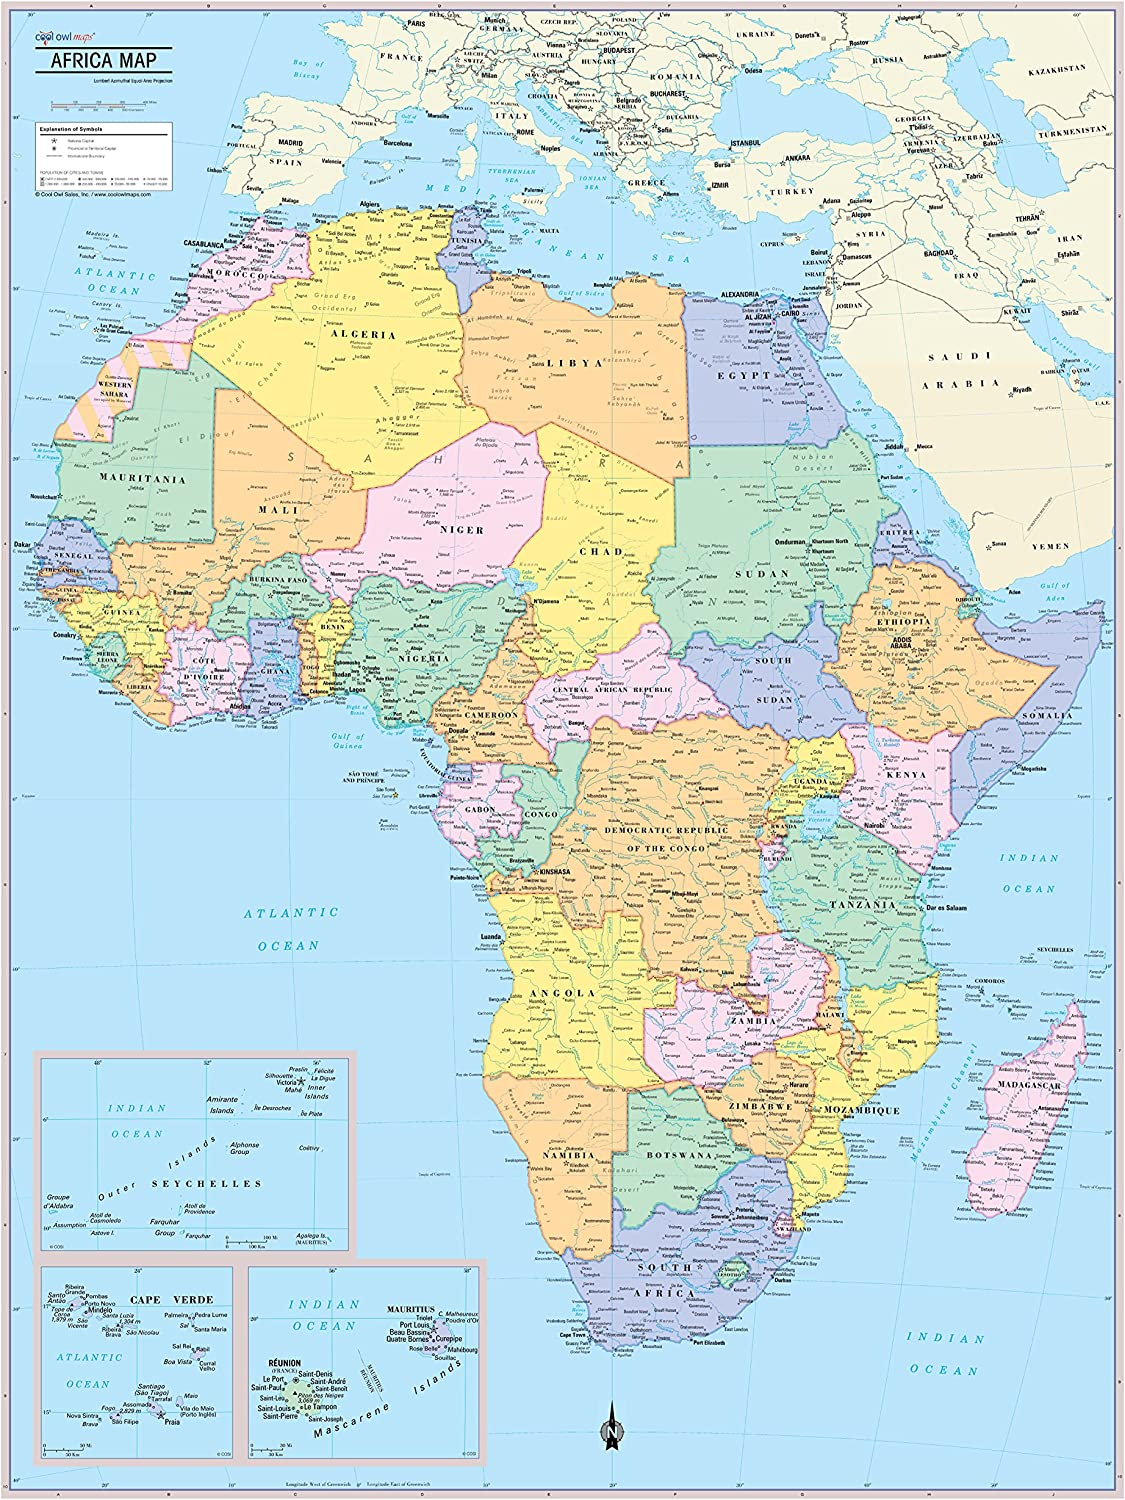 Amazon Com Cool Owl Maps Africa Continent Wall Map Poster Rolled Paper 24 X32 Office Products